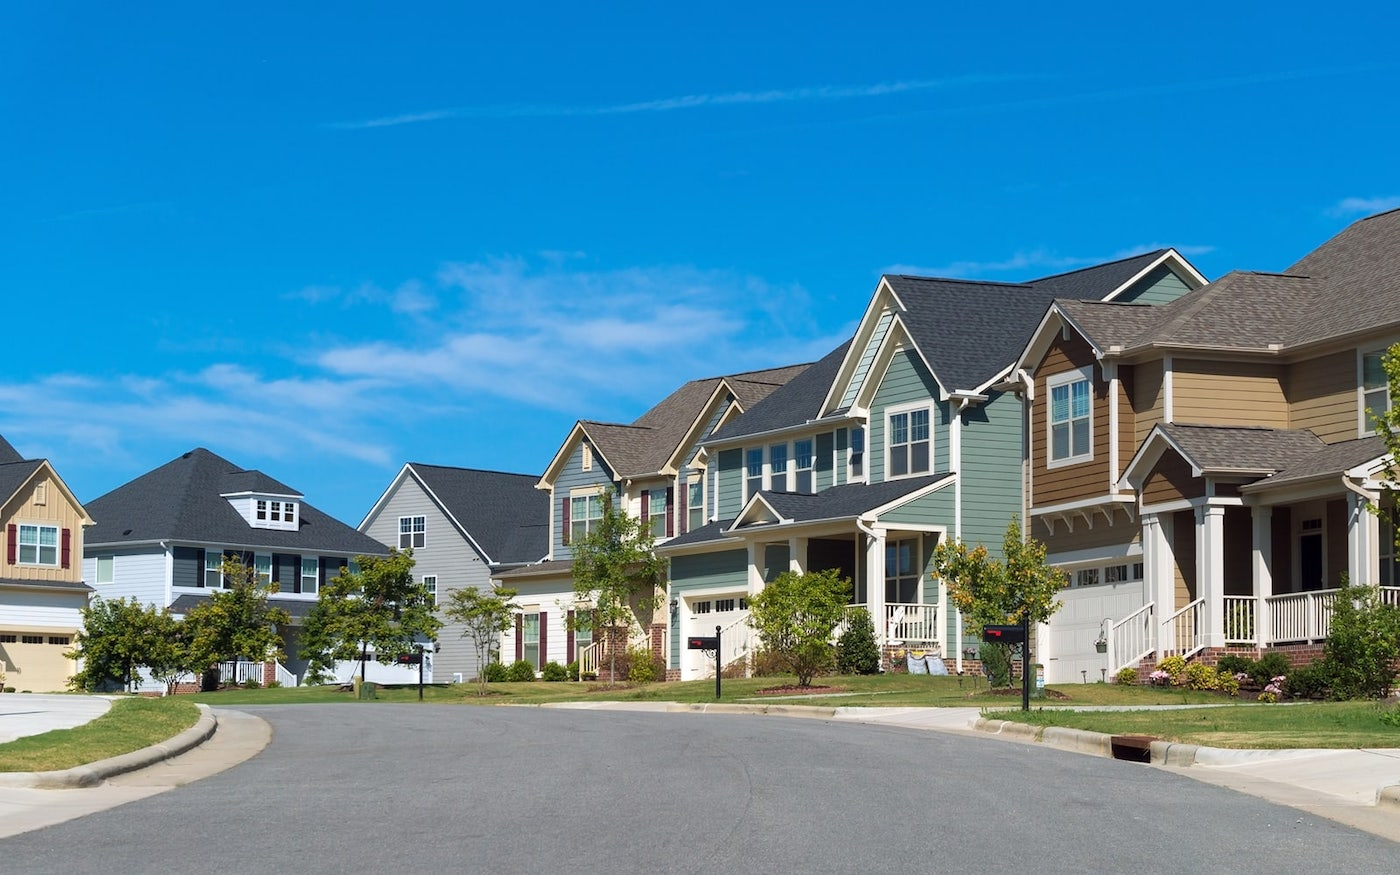 How to sell your home fast: 3 tips